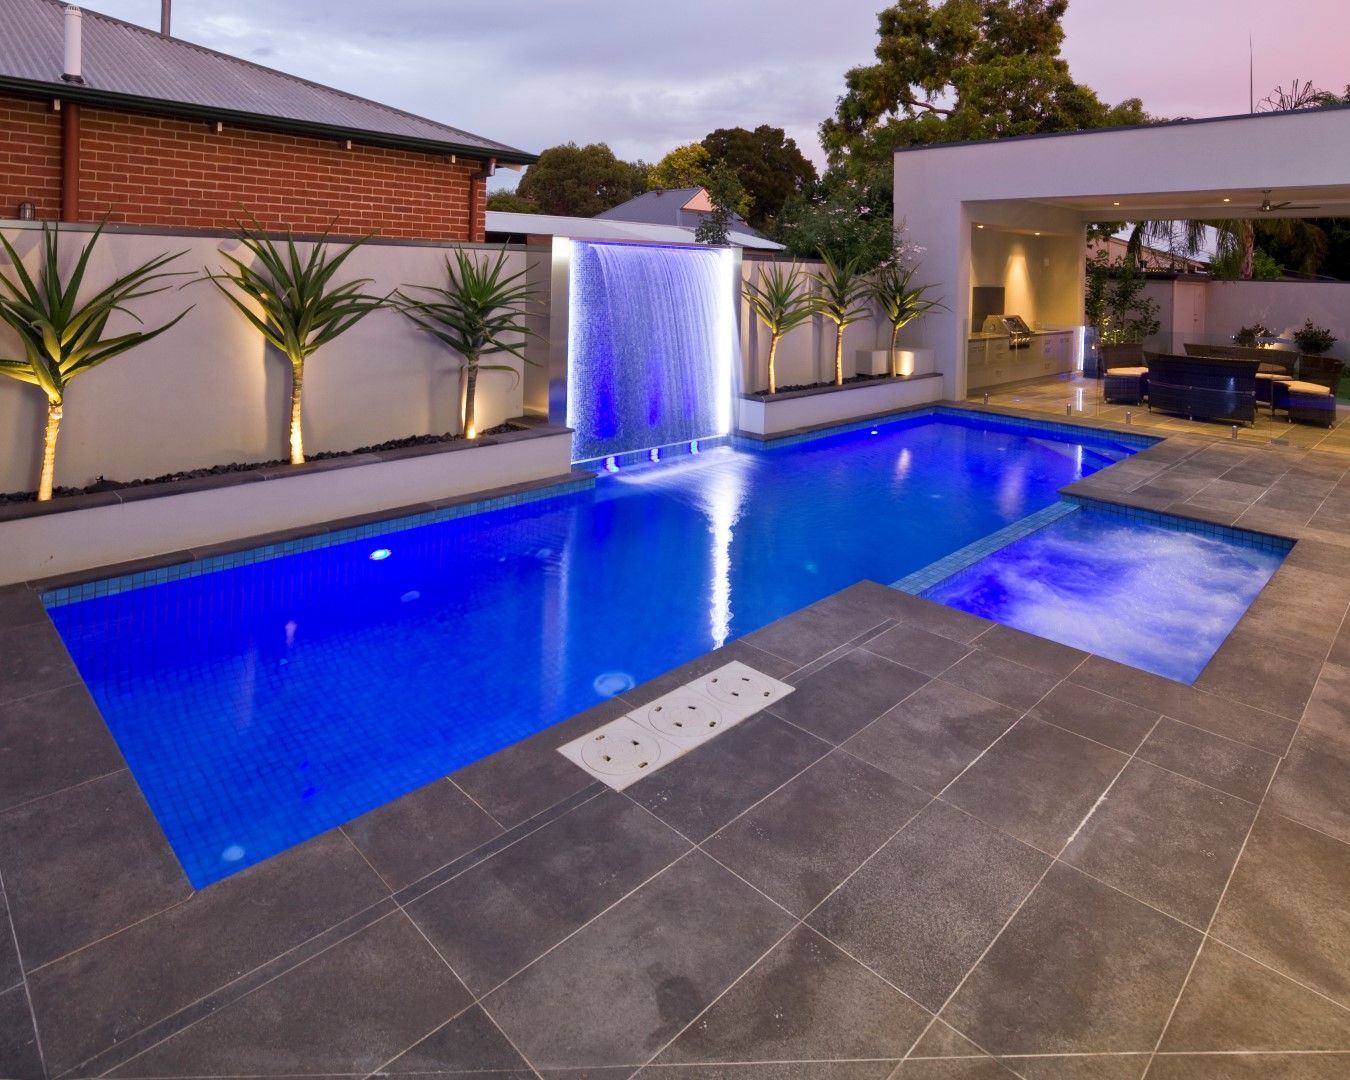 Concretepool swimmingpool freedompools resort pools for Small backyard swimming pool designs